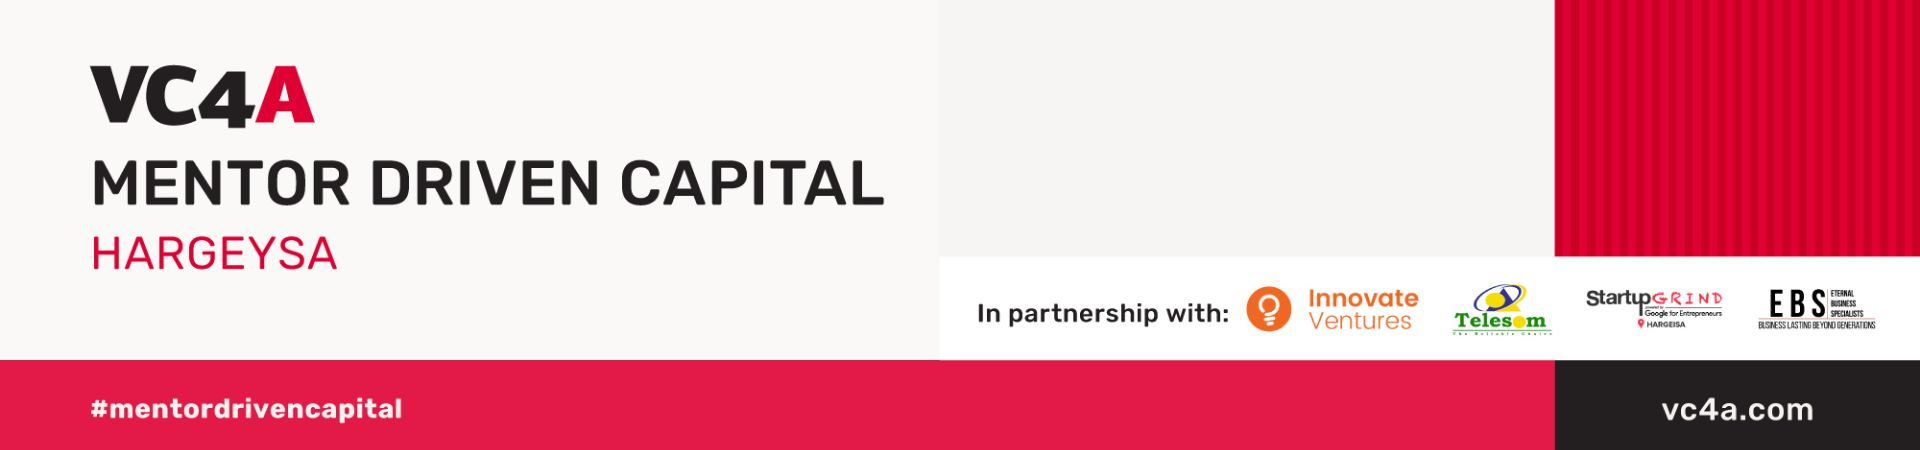 Mentor Driven Capital program Hargeisa 2019